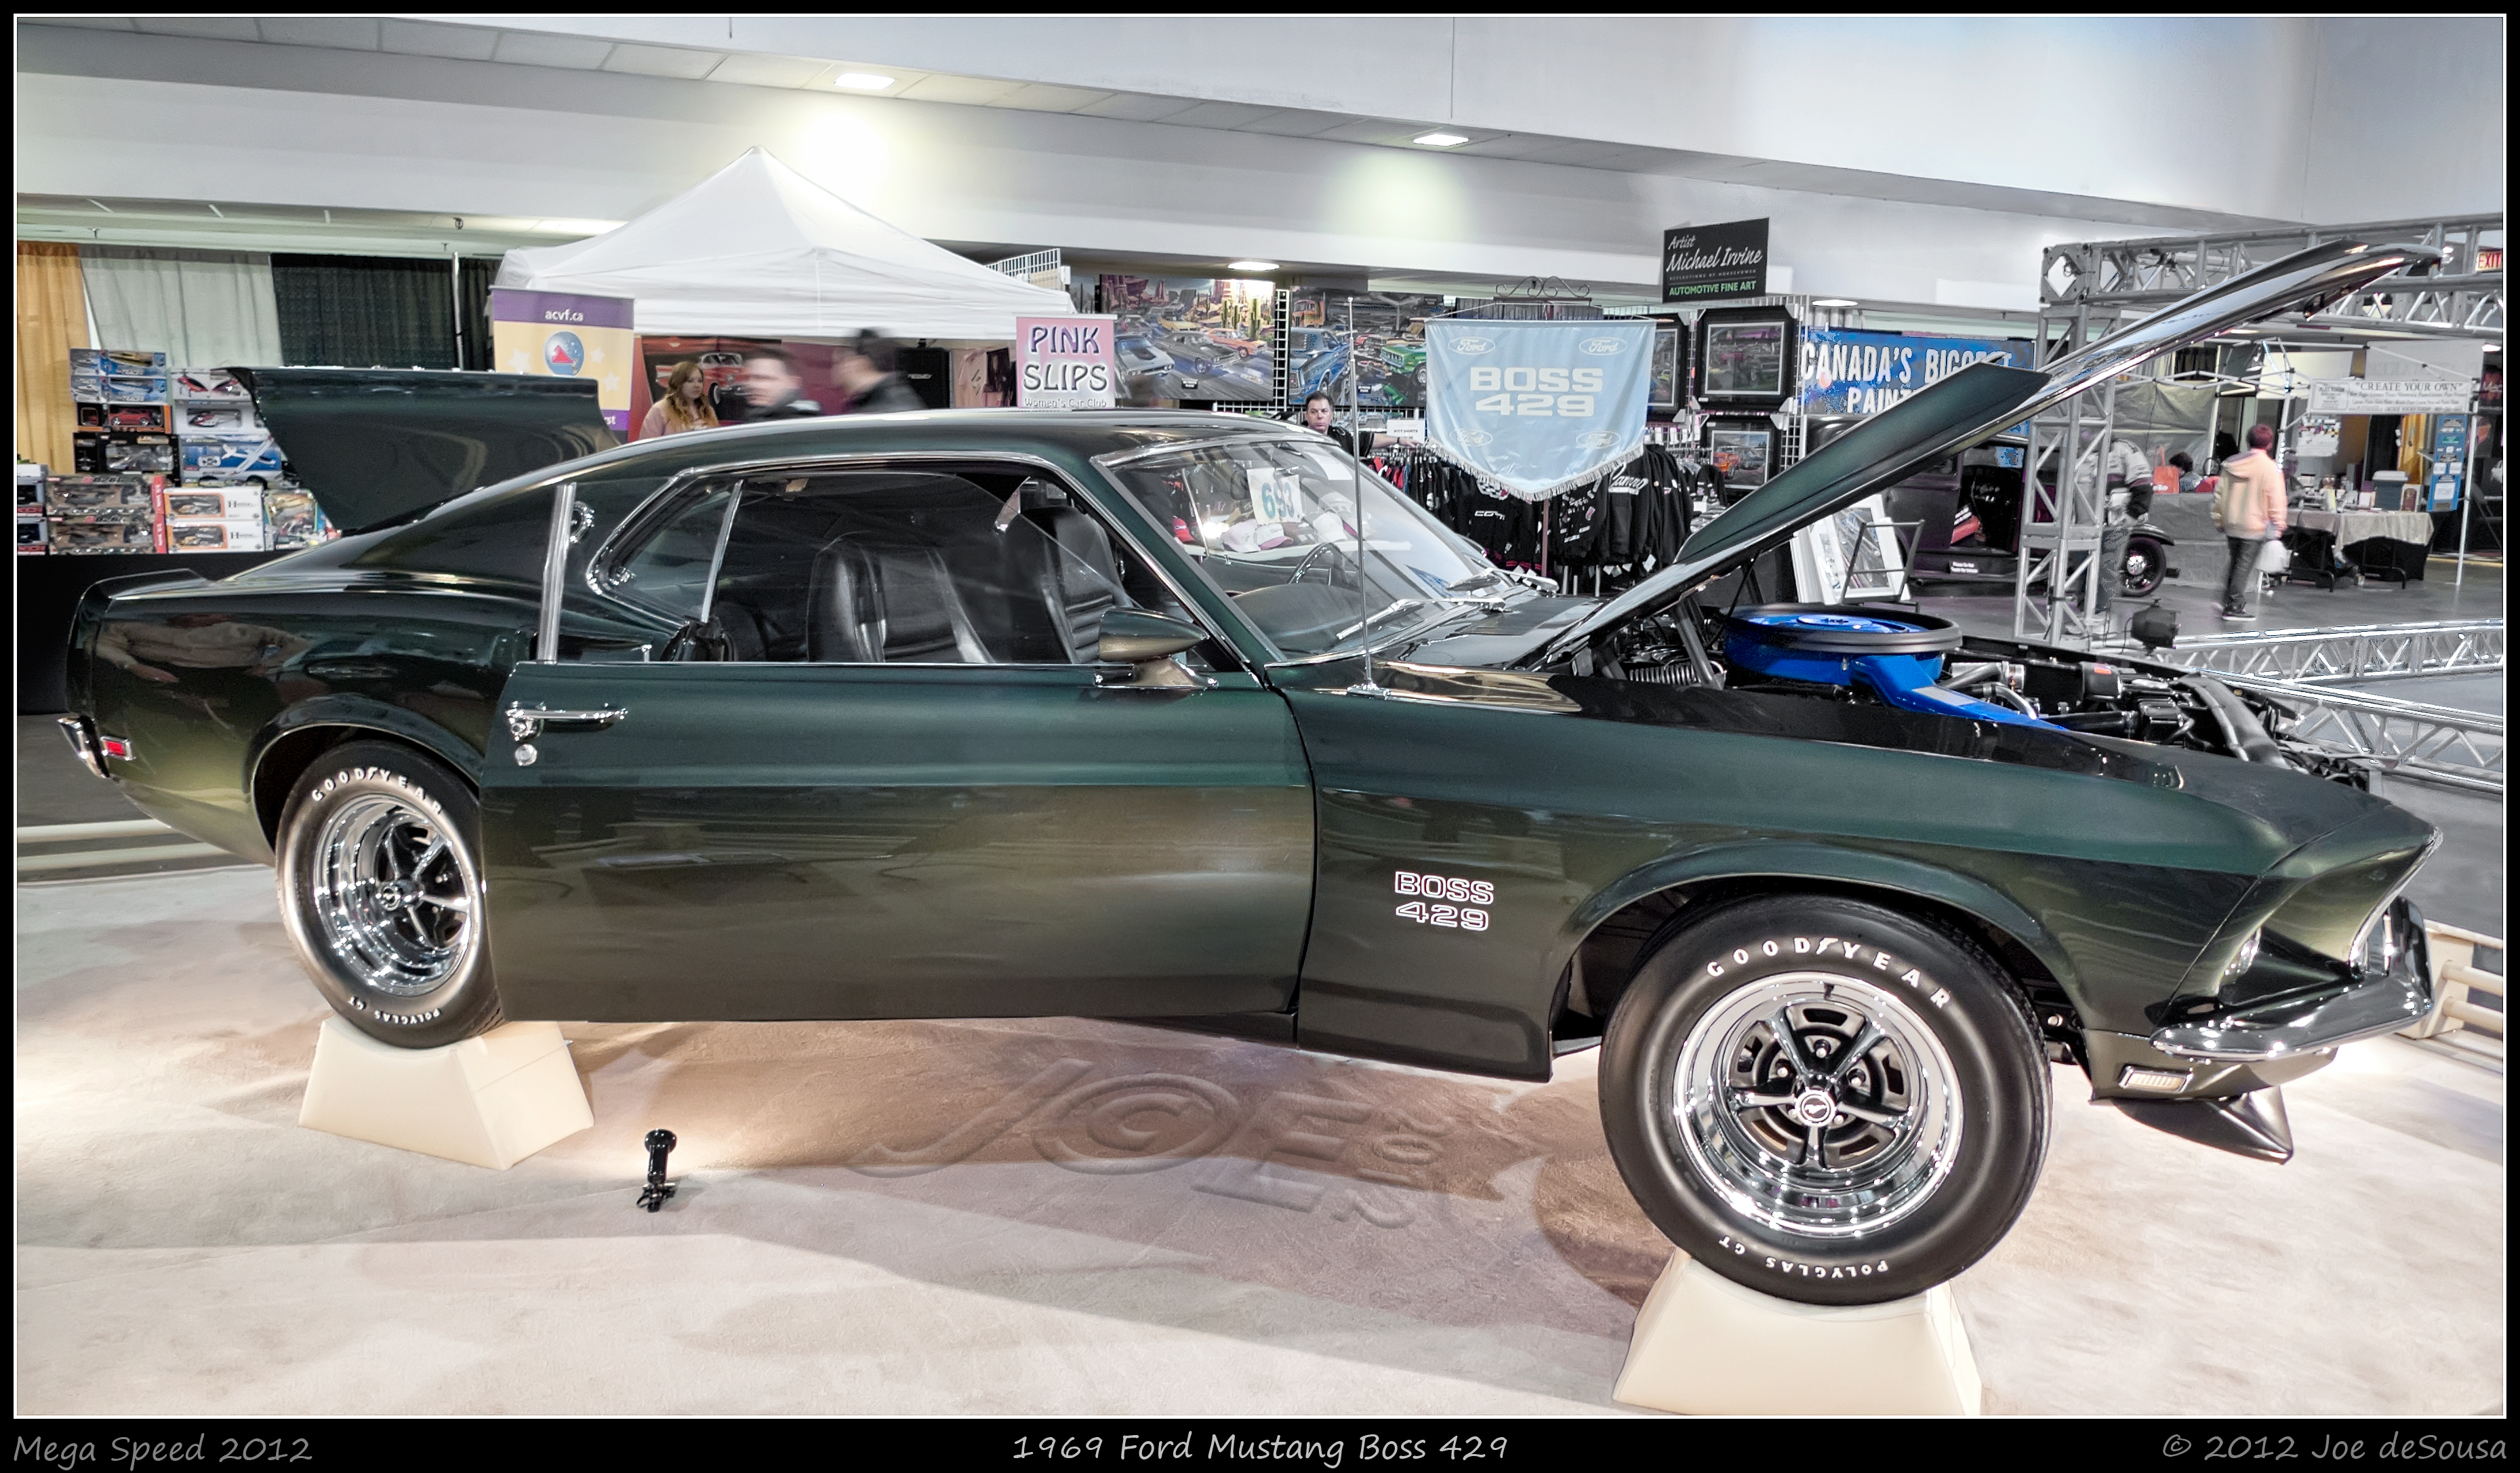 1969 Ford Mustang Boss 429, 1969, Mississauga, Vehicle, Topaz, HQ Photo